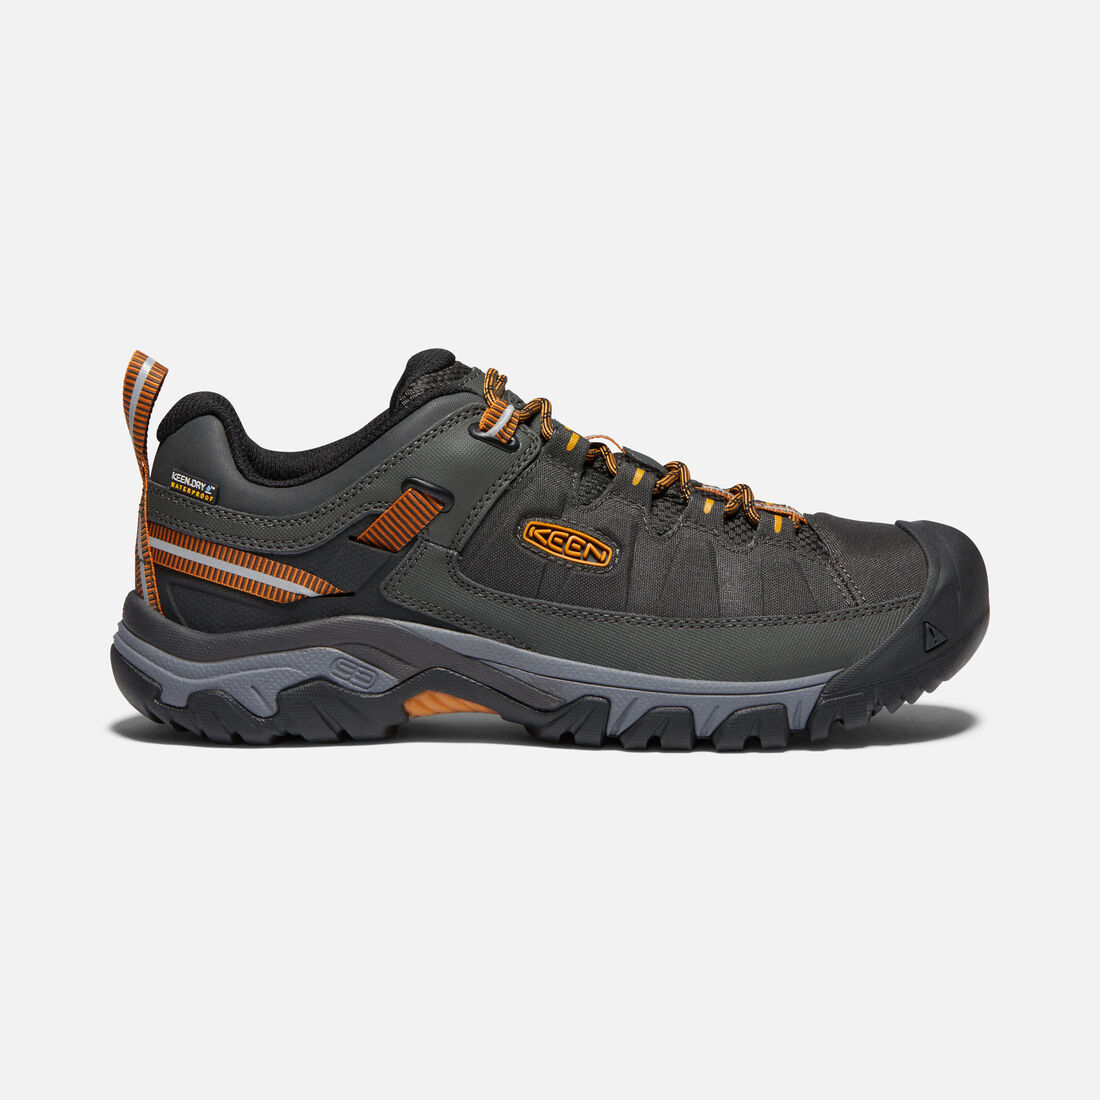 MEN'S TARGHEE EXP WATERPROOF HIKING SHOES in RAVEN/INCA GOLD - large view.